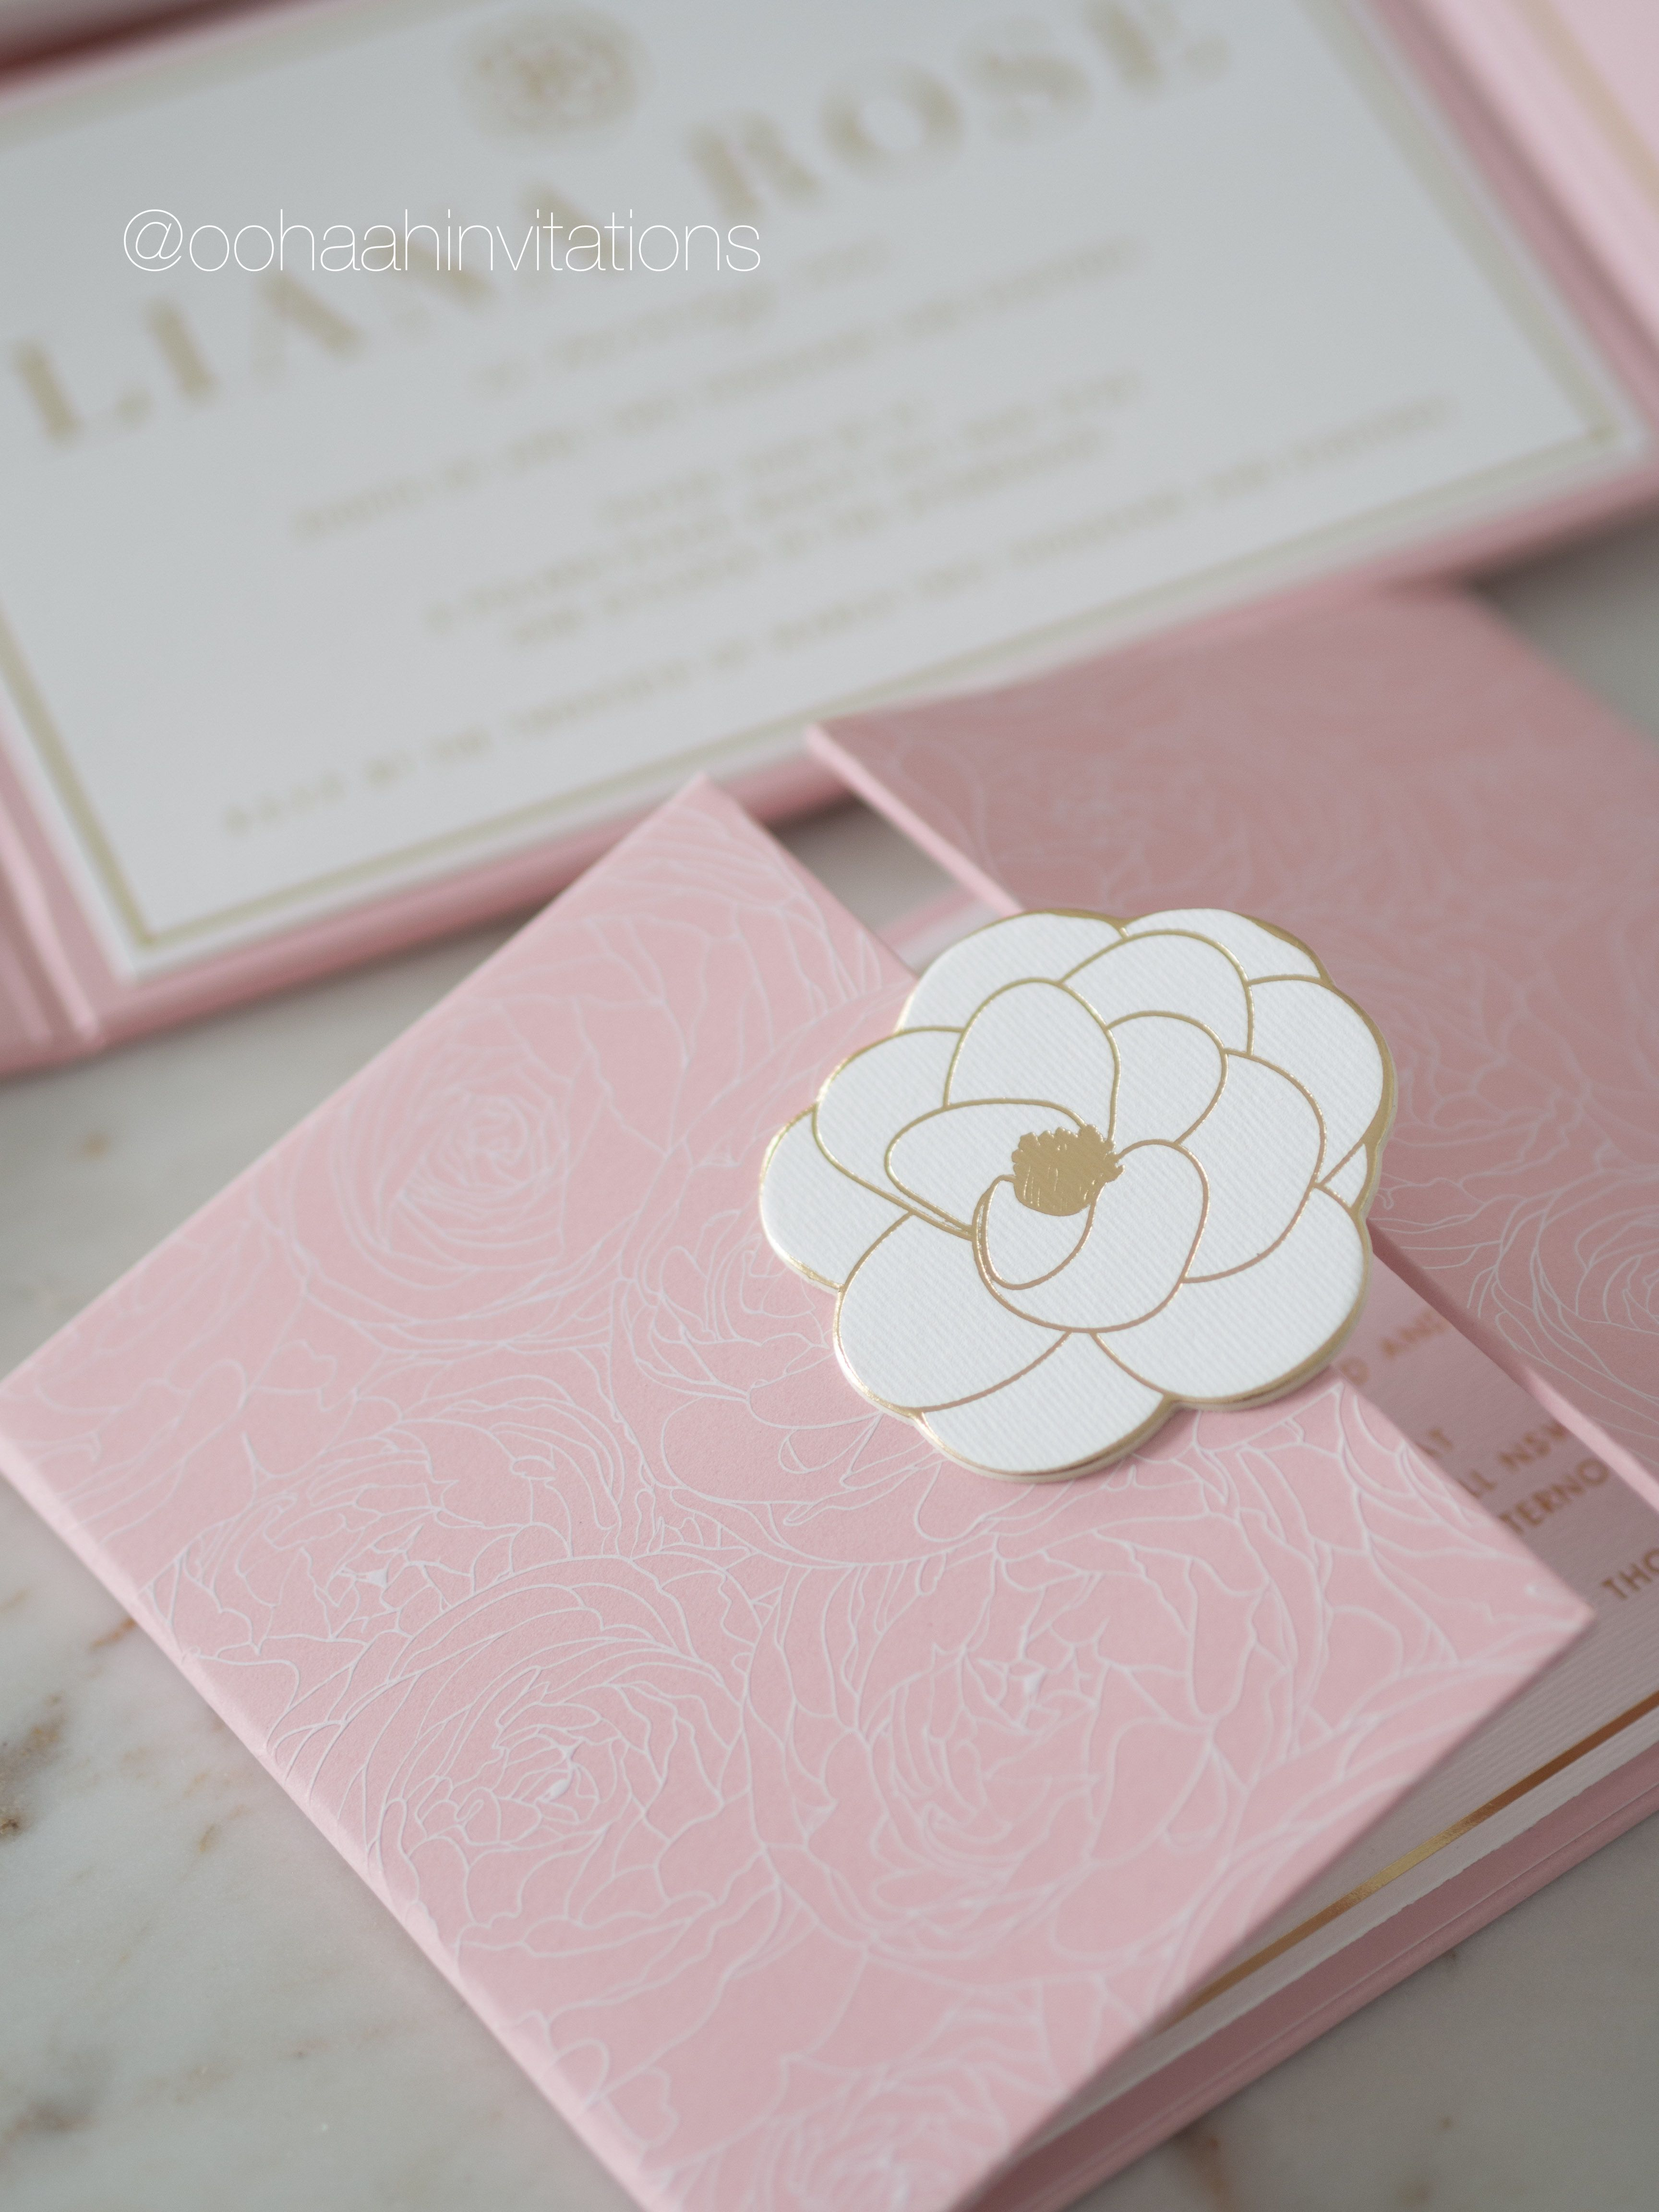 THE GATEFOLD Liana Rose first birthday party invitation by ooh a Luxury wedding invitations